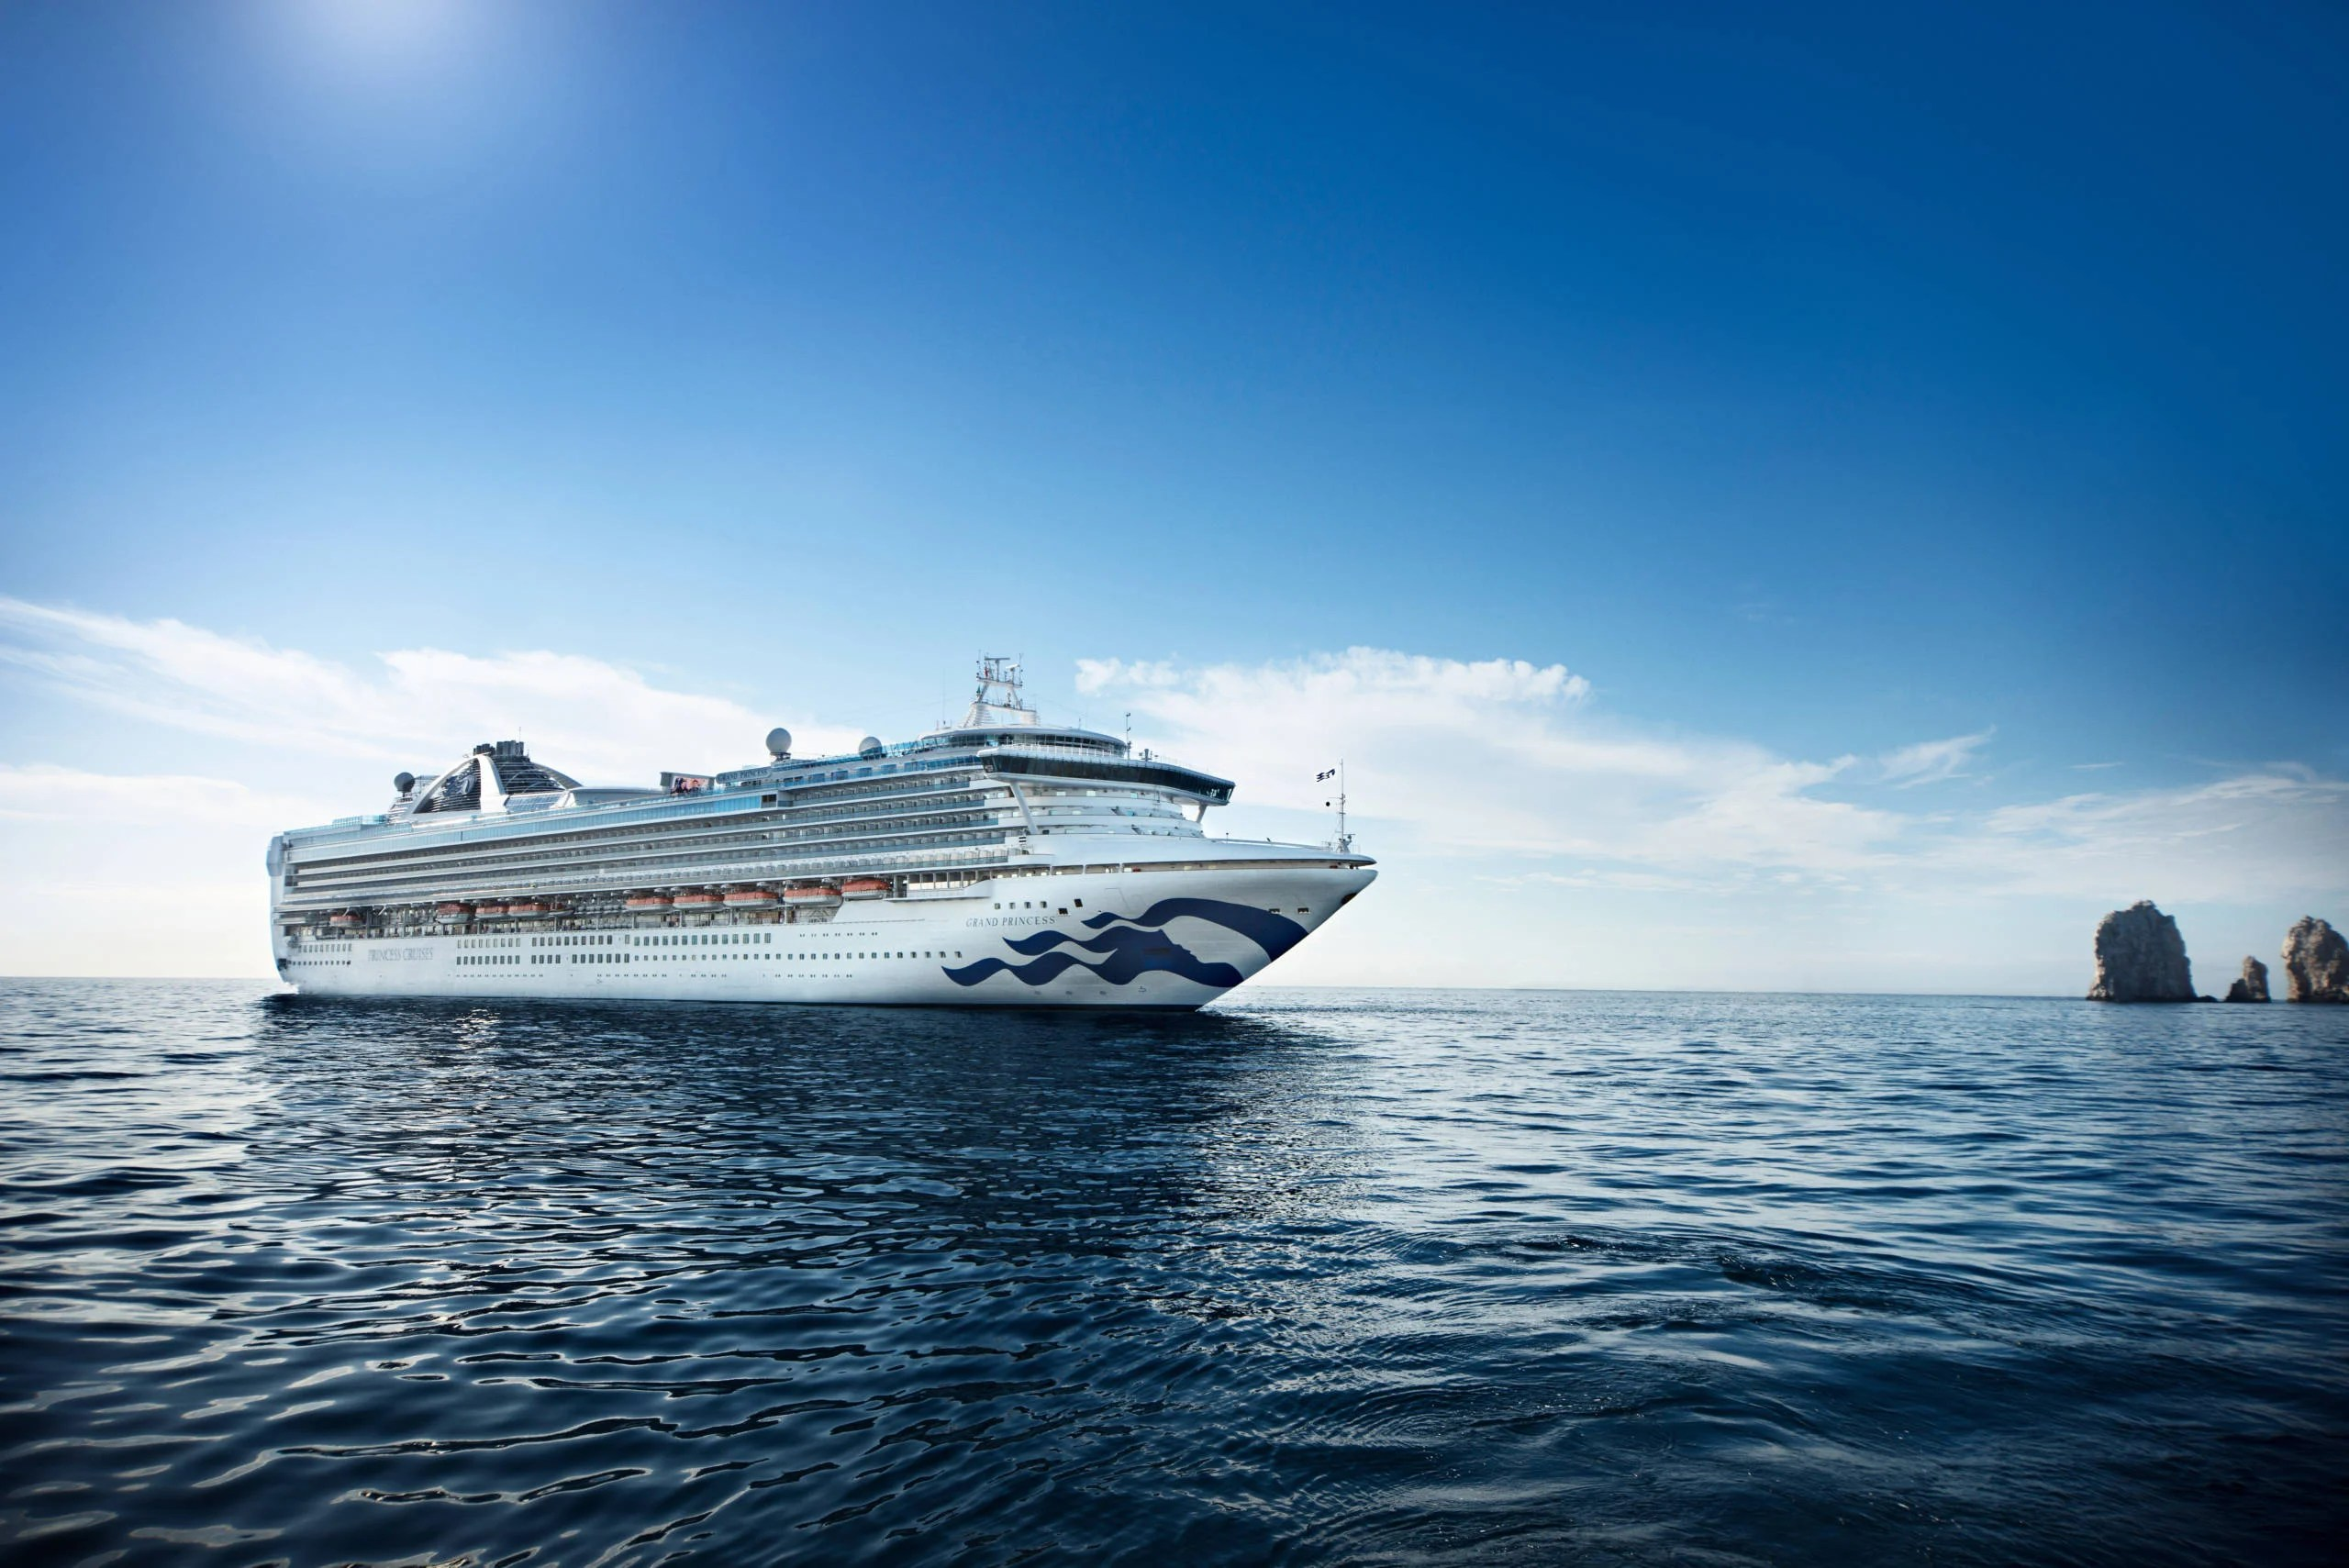 Here's how to cancel or postpone a cruise due to coronavirus